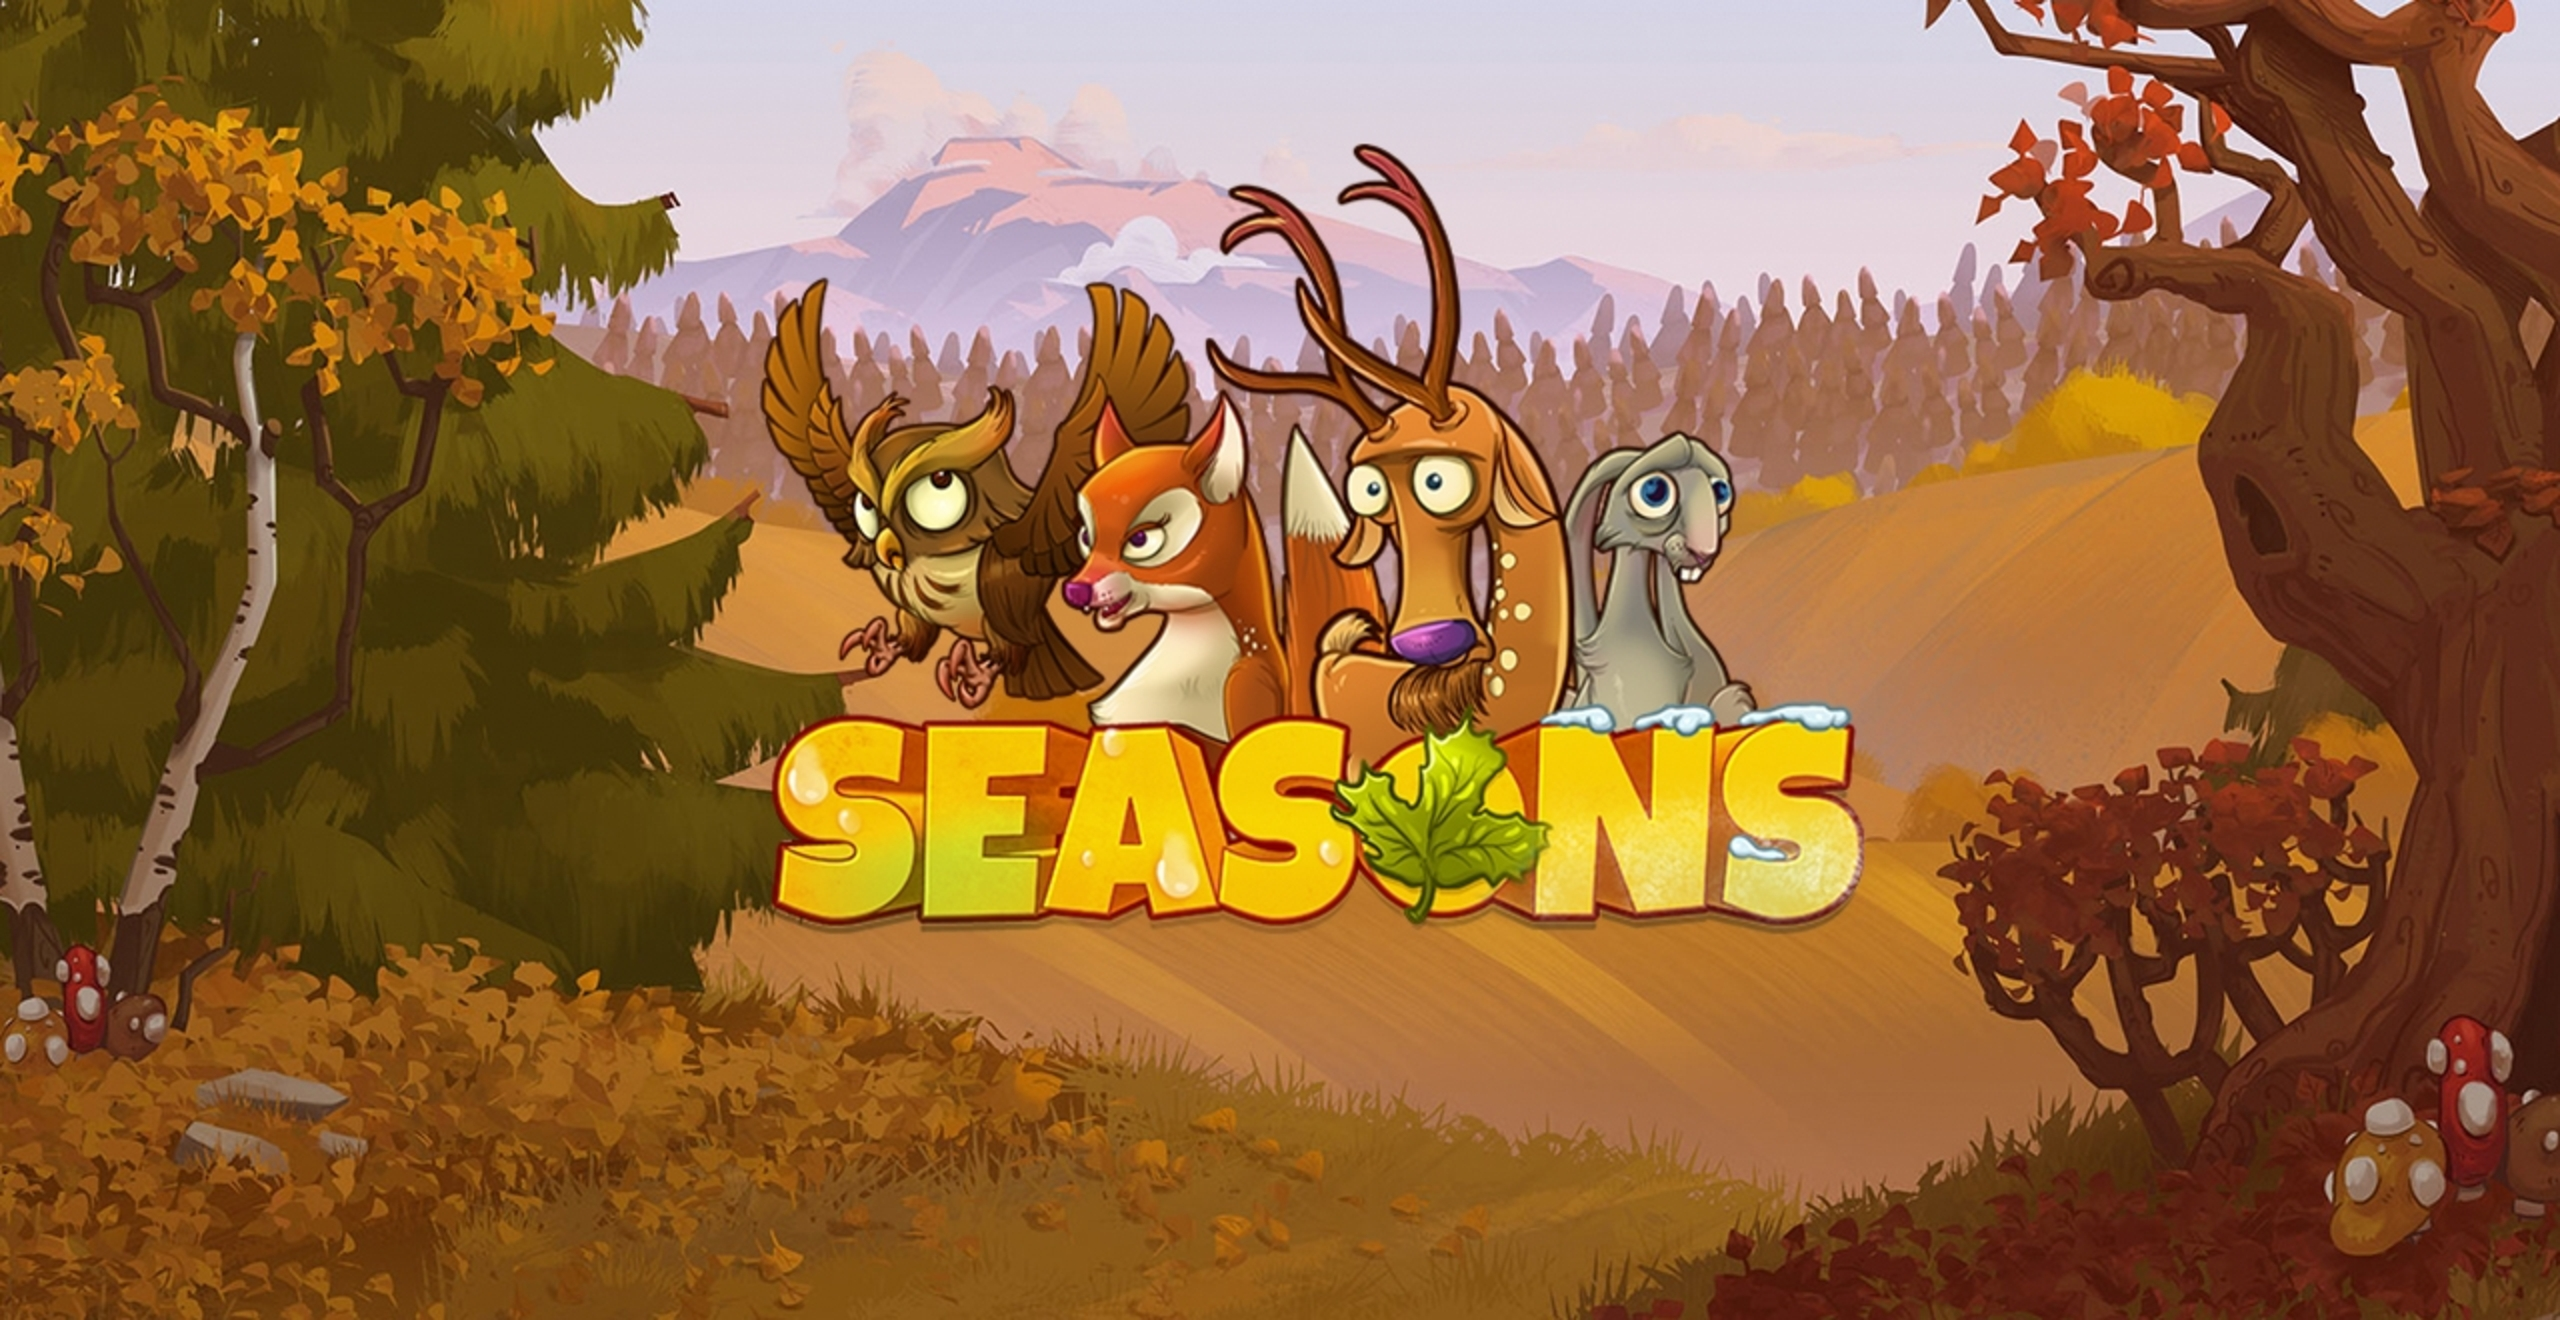 The Seasons Online Slot Demo Game by Yggdrasil